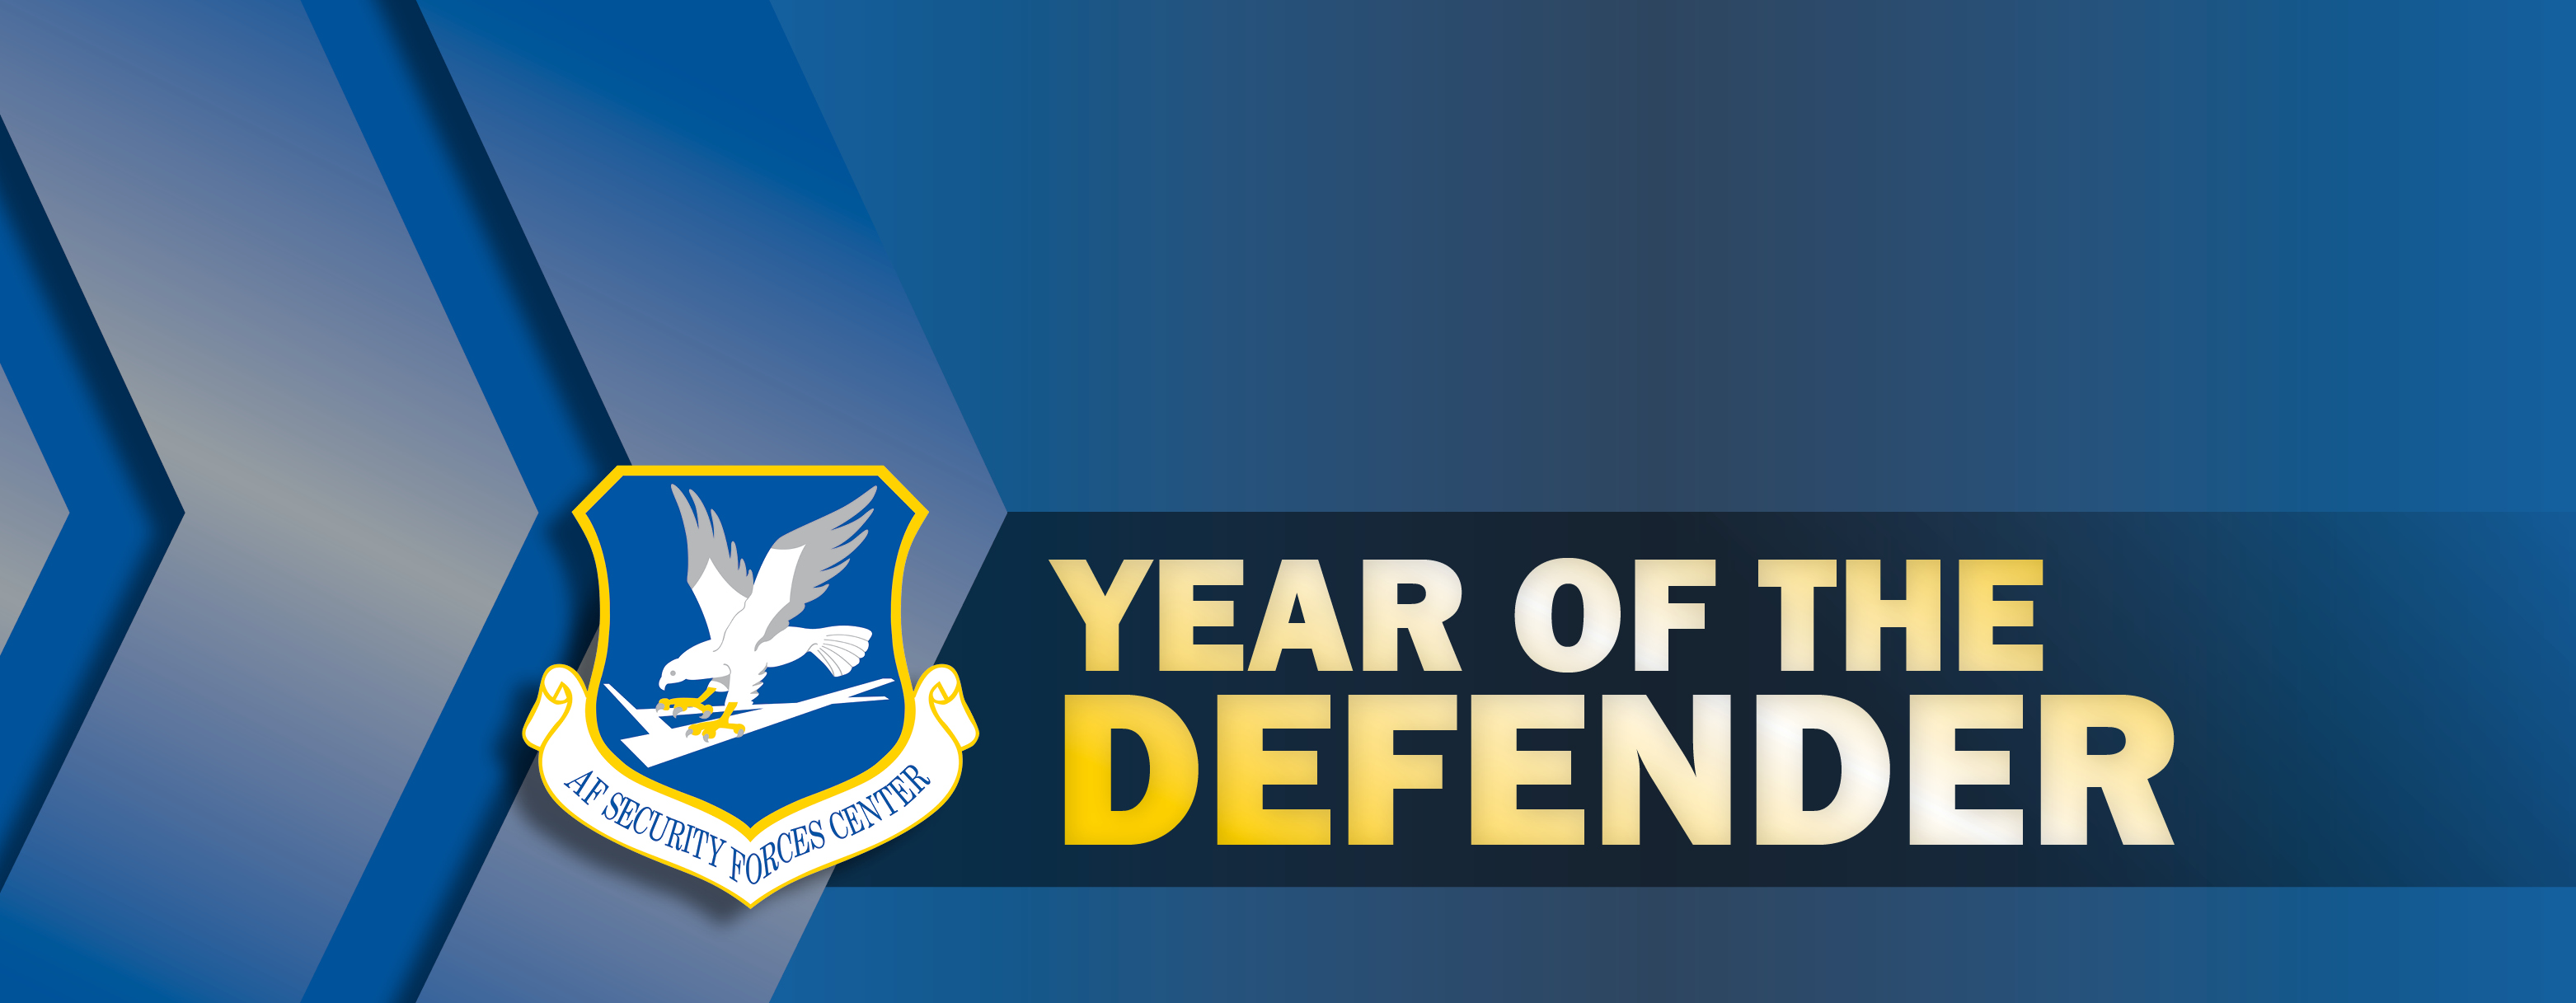 Year of the Defender